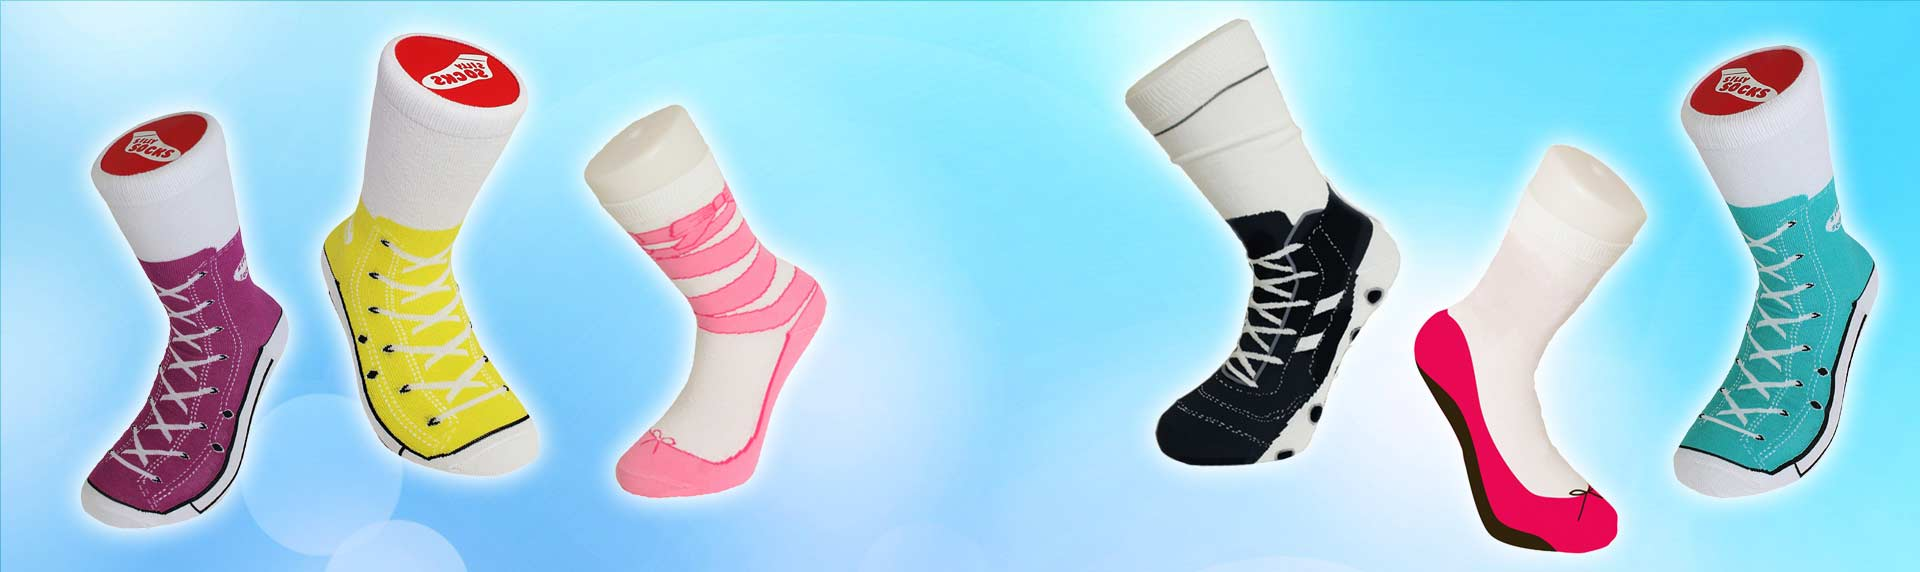 Sneaker Socken-Silly Socks